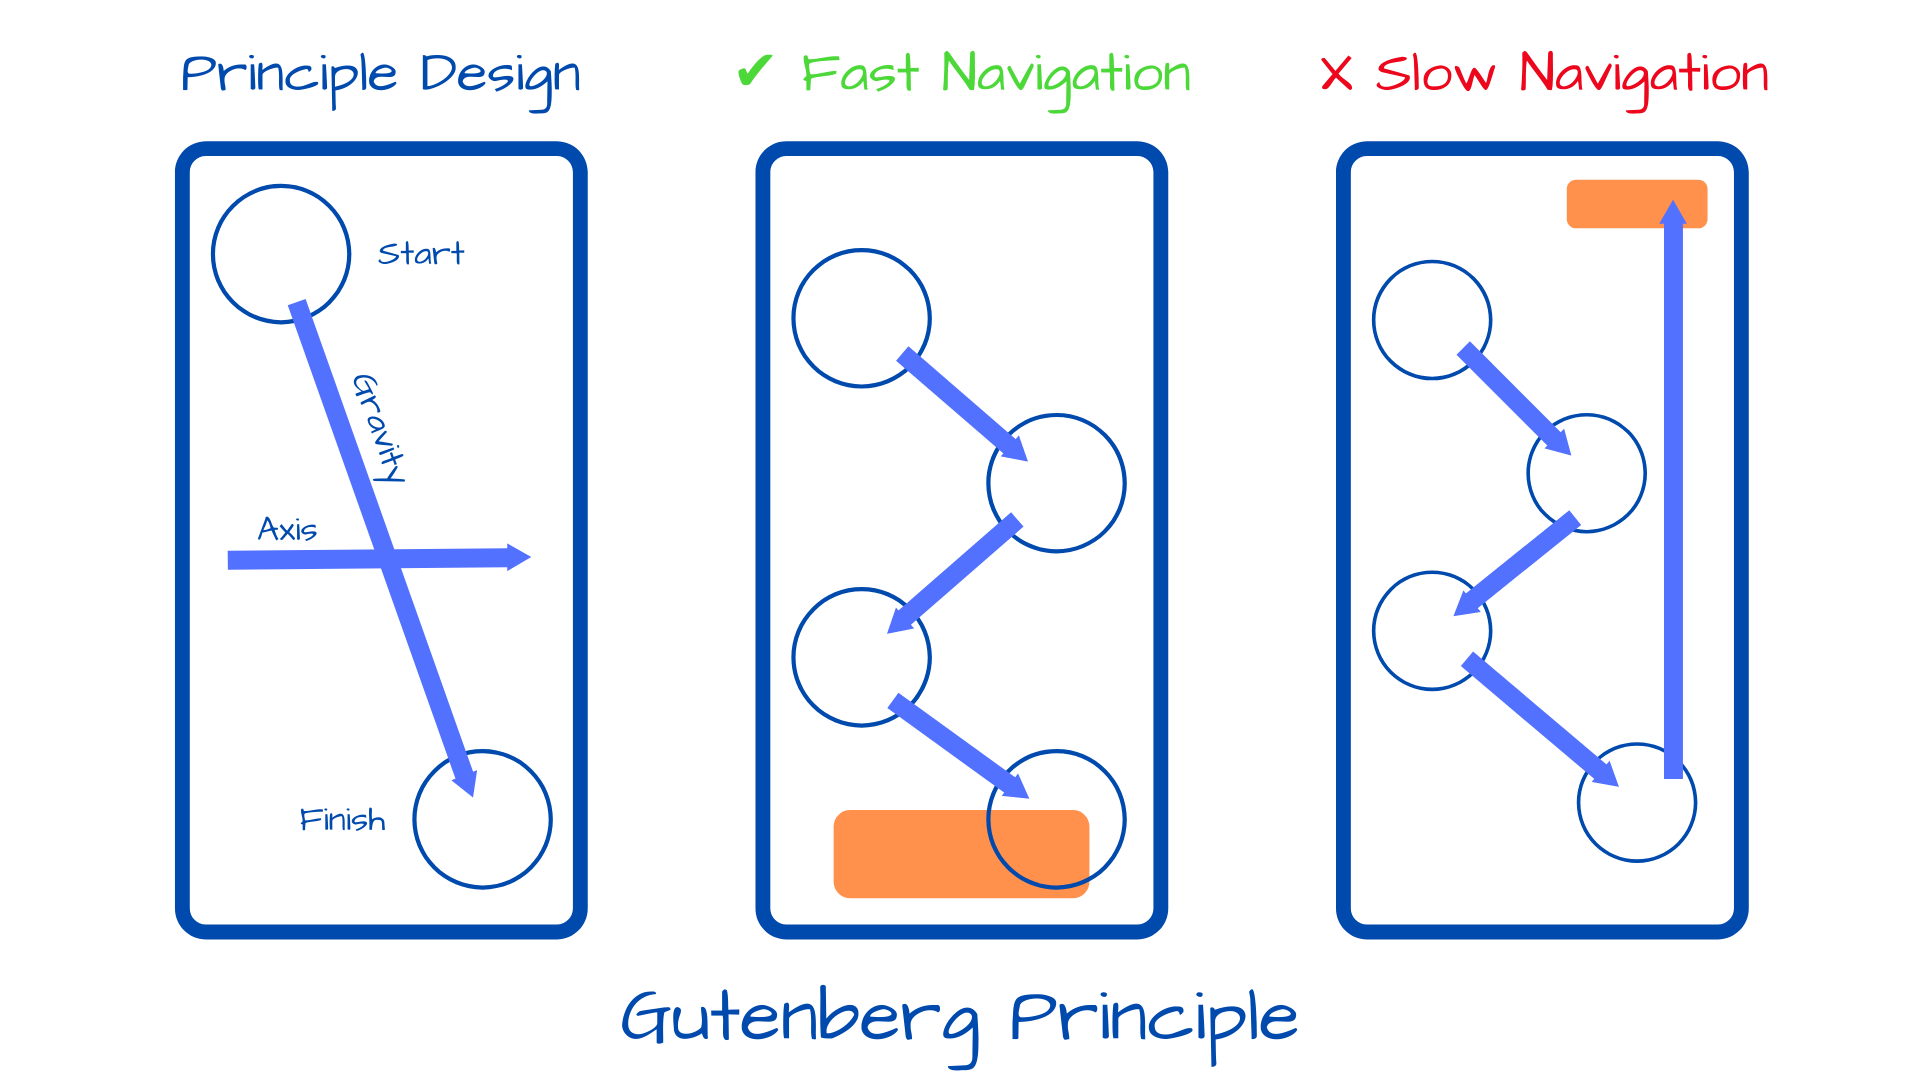 The graphic shows a Gutenberg diagram that illustrates where should be the most important elements on the web page